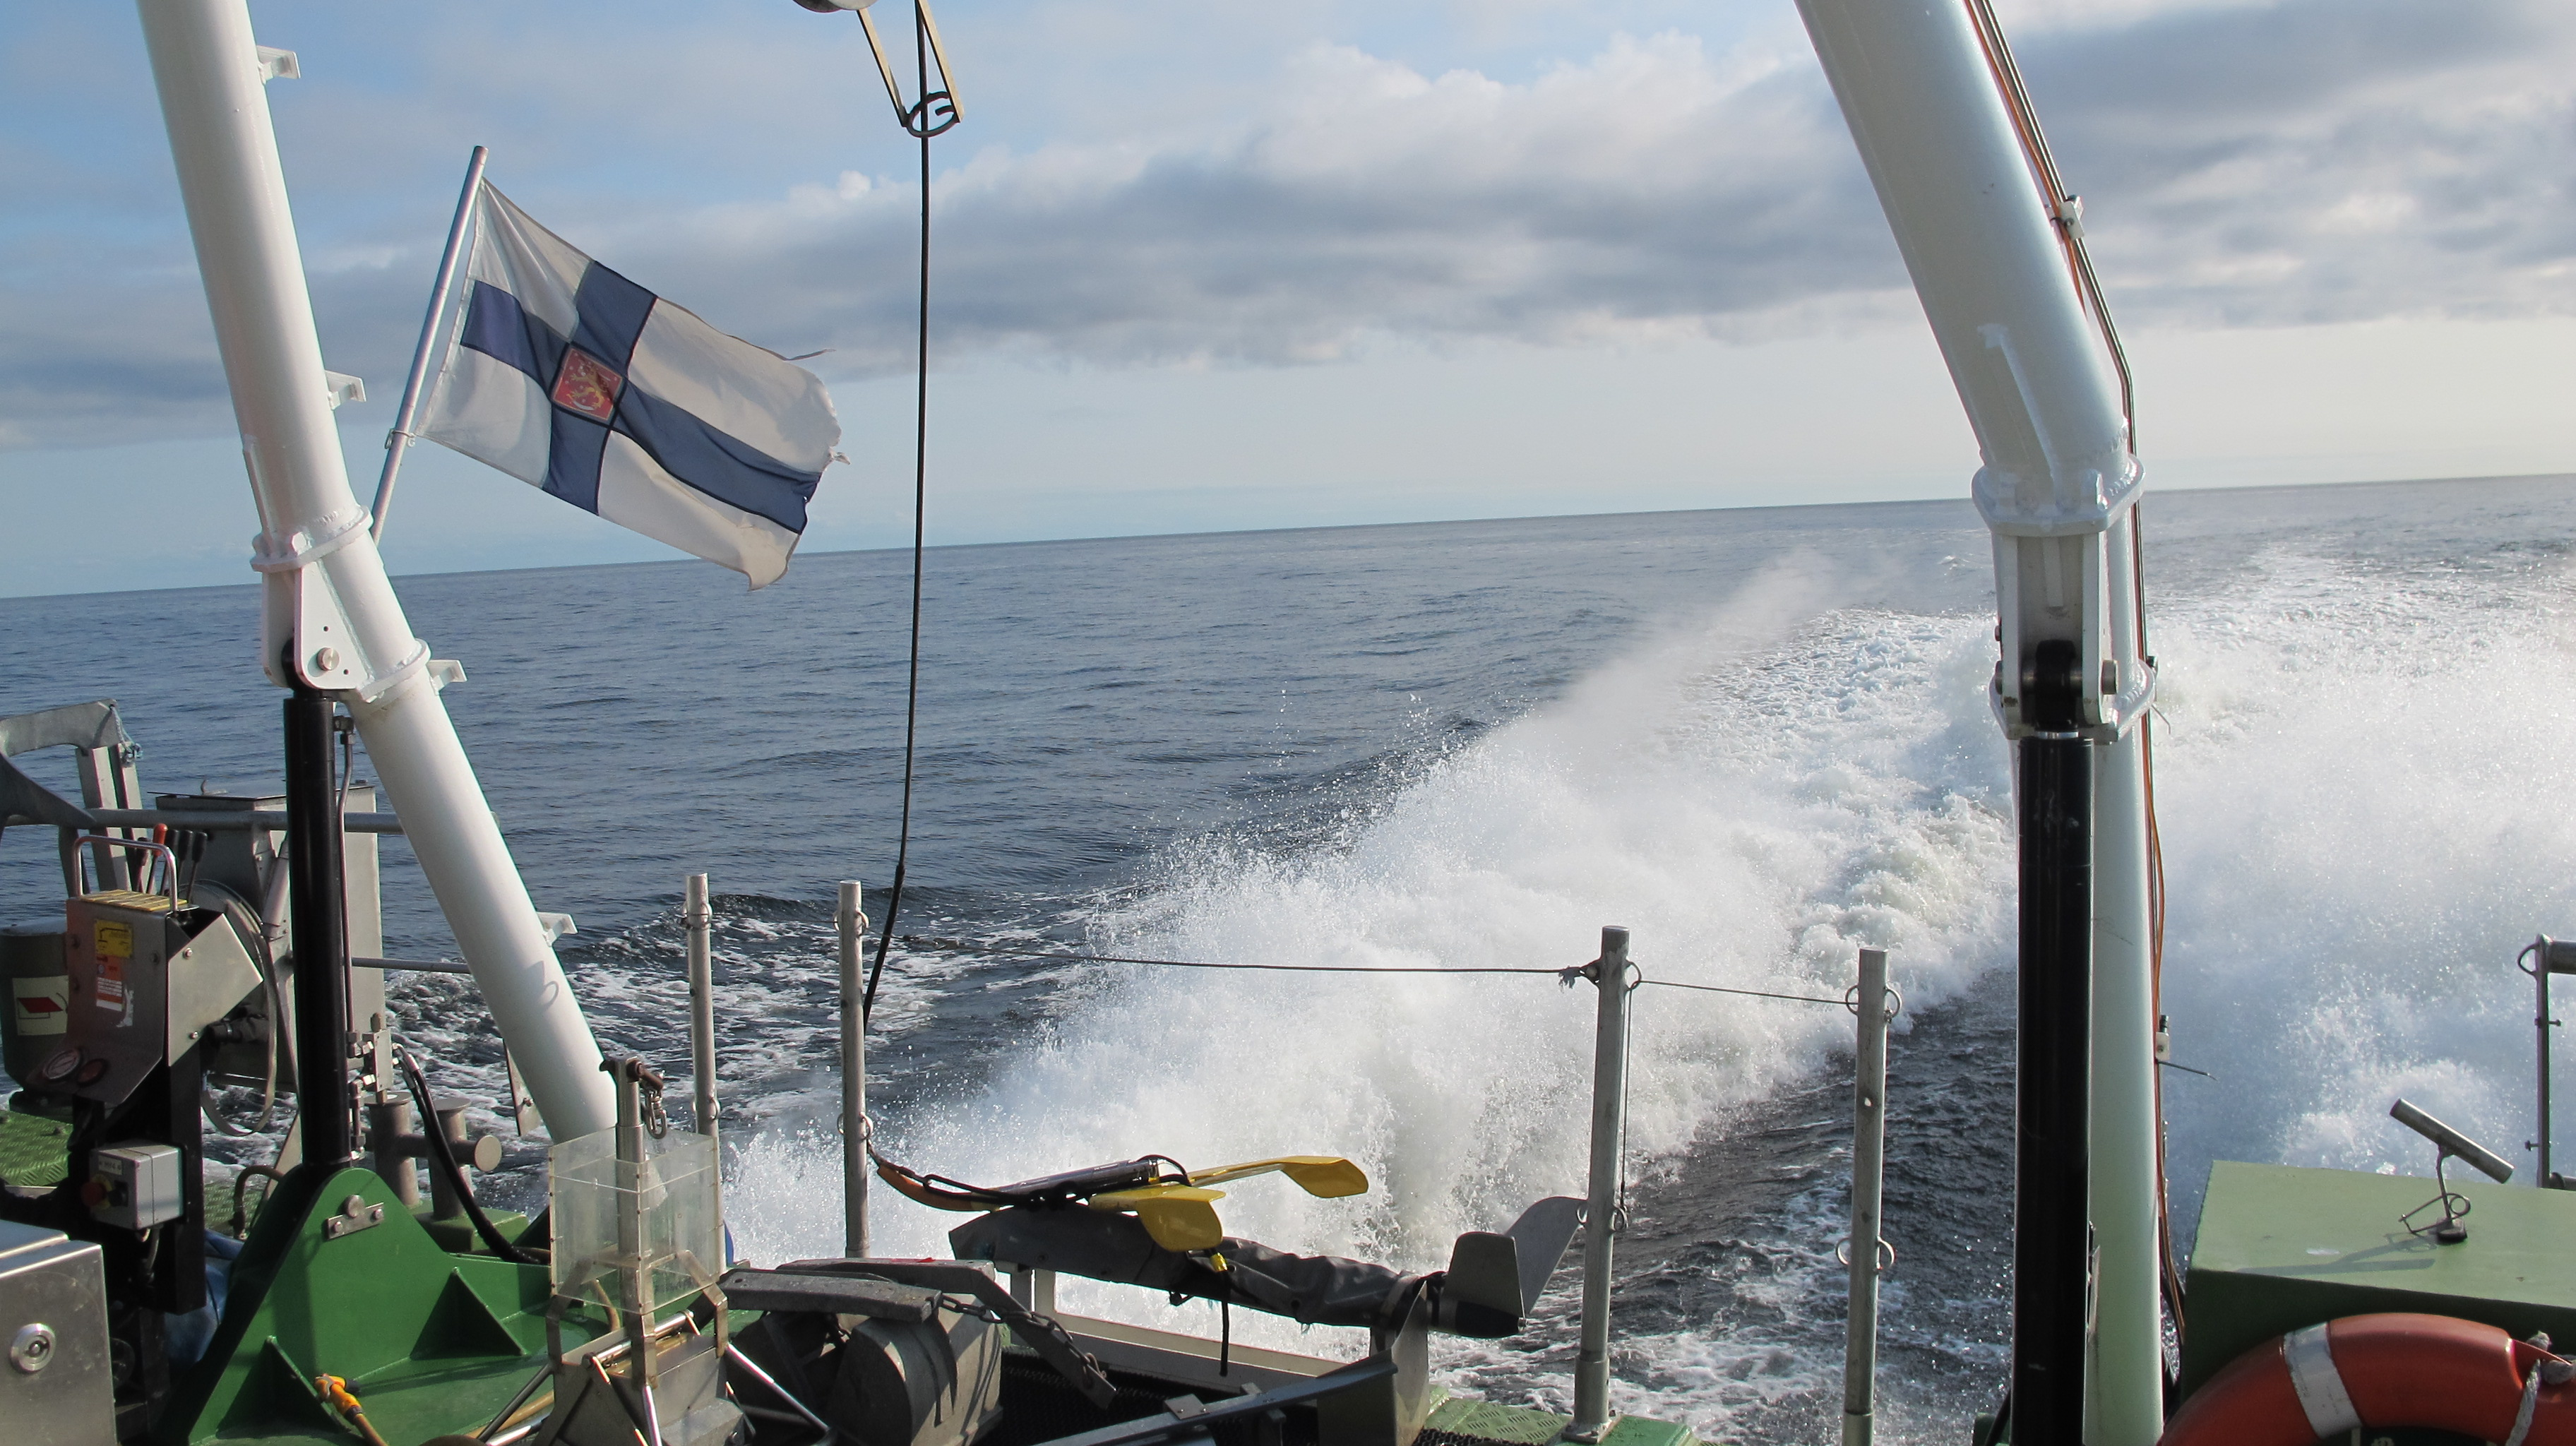 End of the ship, Finnish flag.